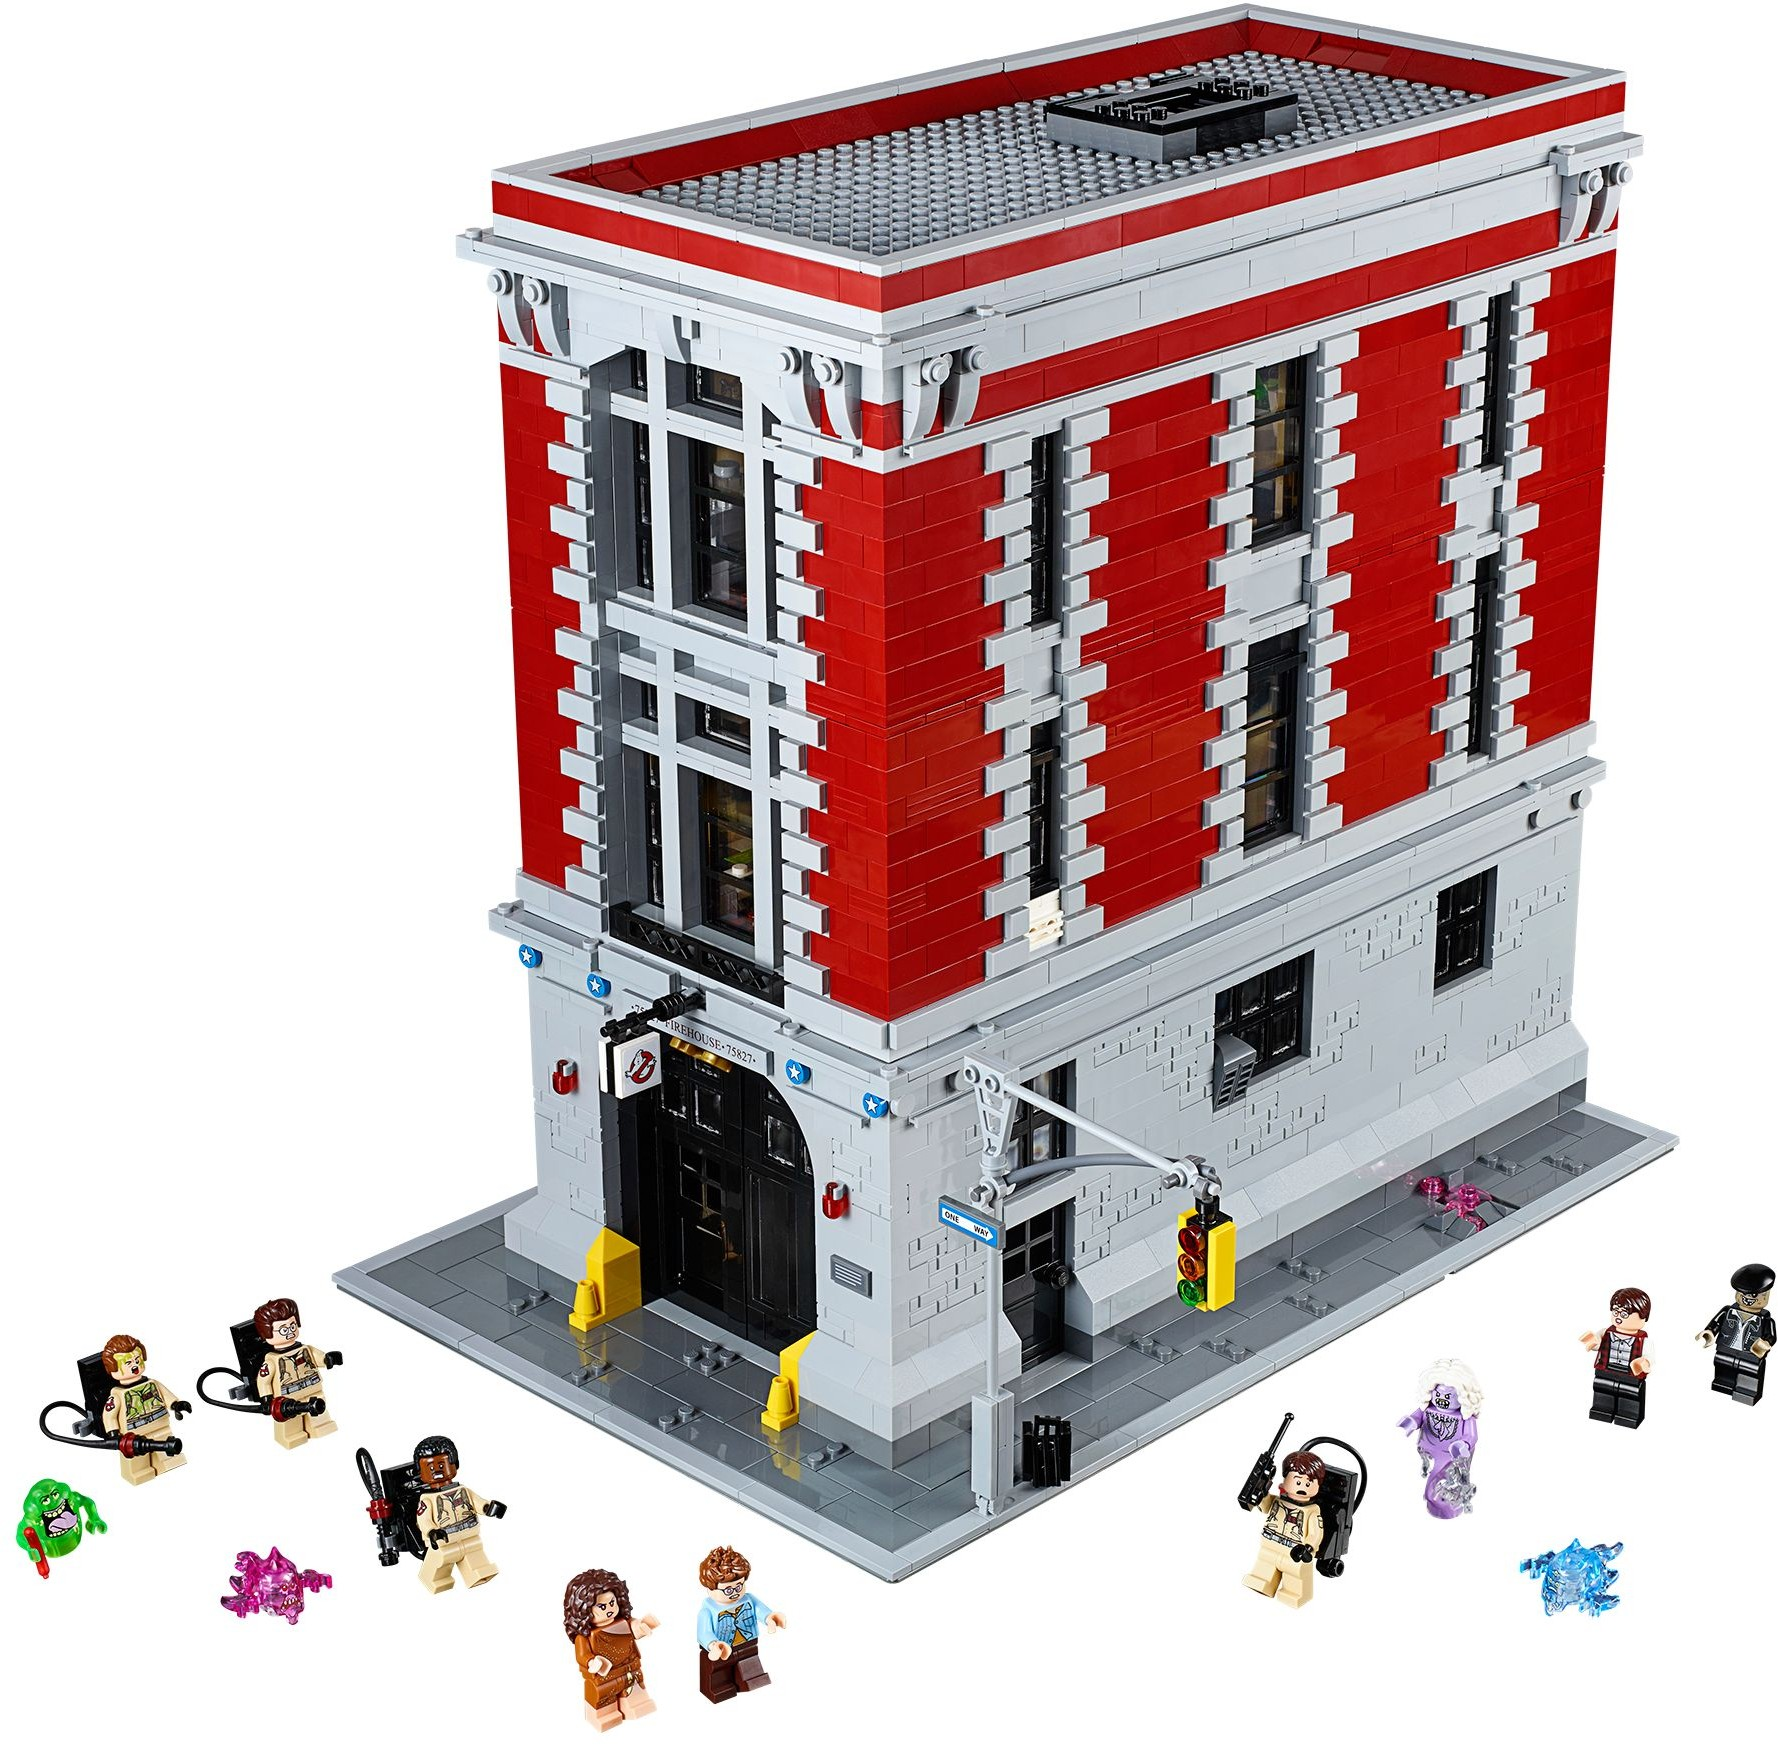 Ghostbusters Brickset Lego Set Guide And Database 75828 Ecto 1 Ampamp 2 Firehouse Headquarters 75827 2016